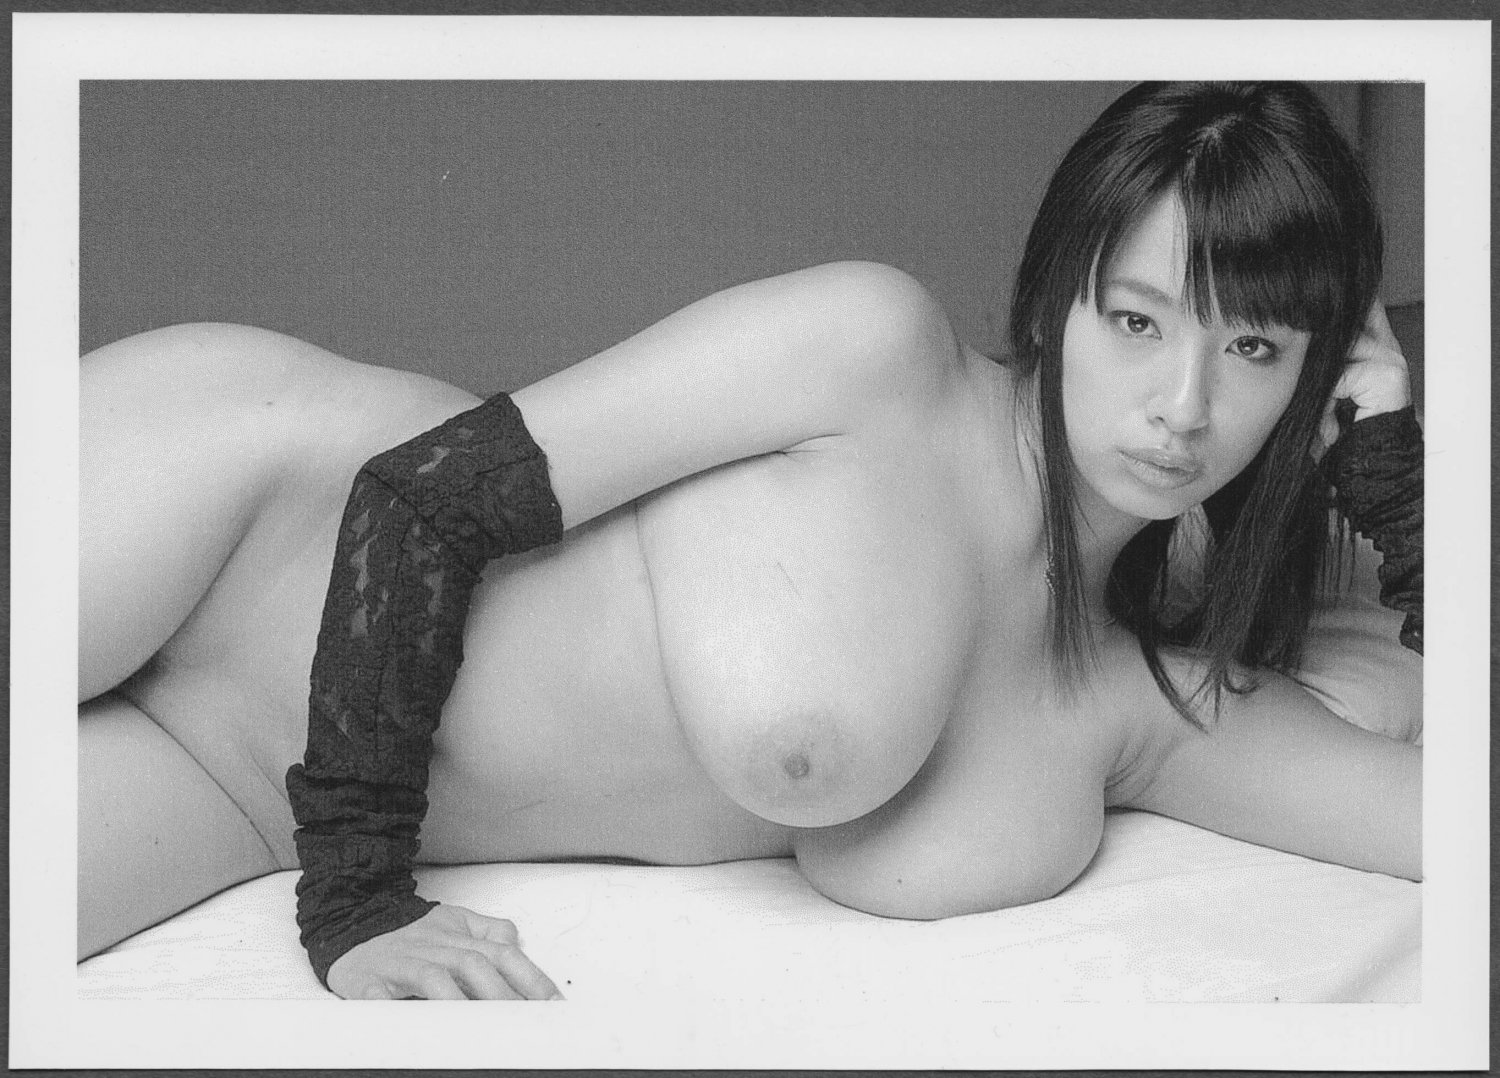 Busty nude japanese models clips butt